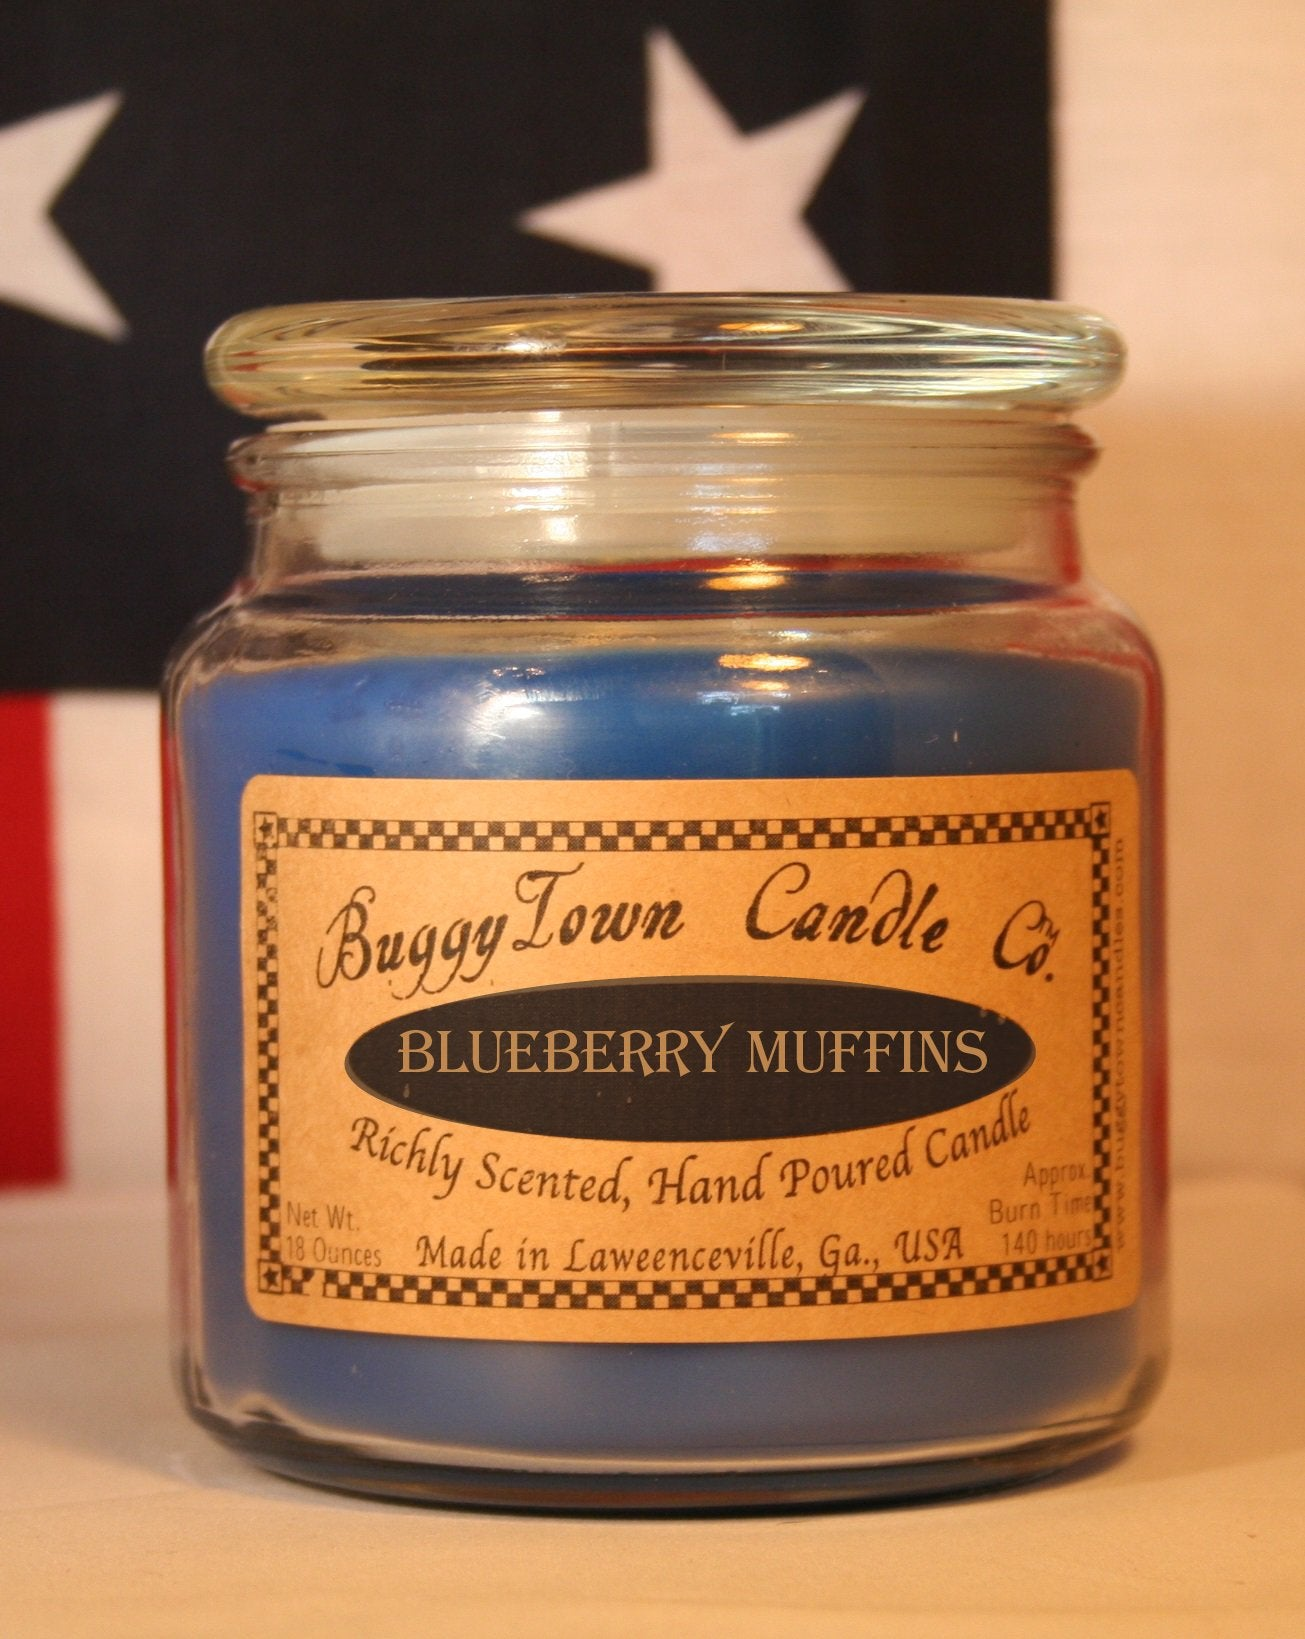 Blueberry Muffins Candles